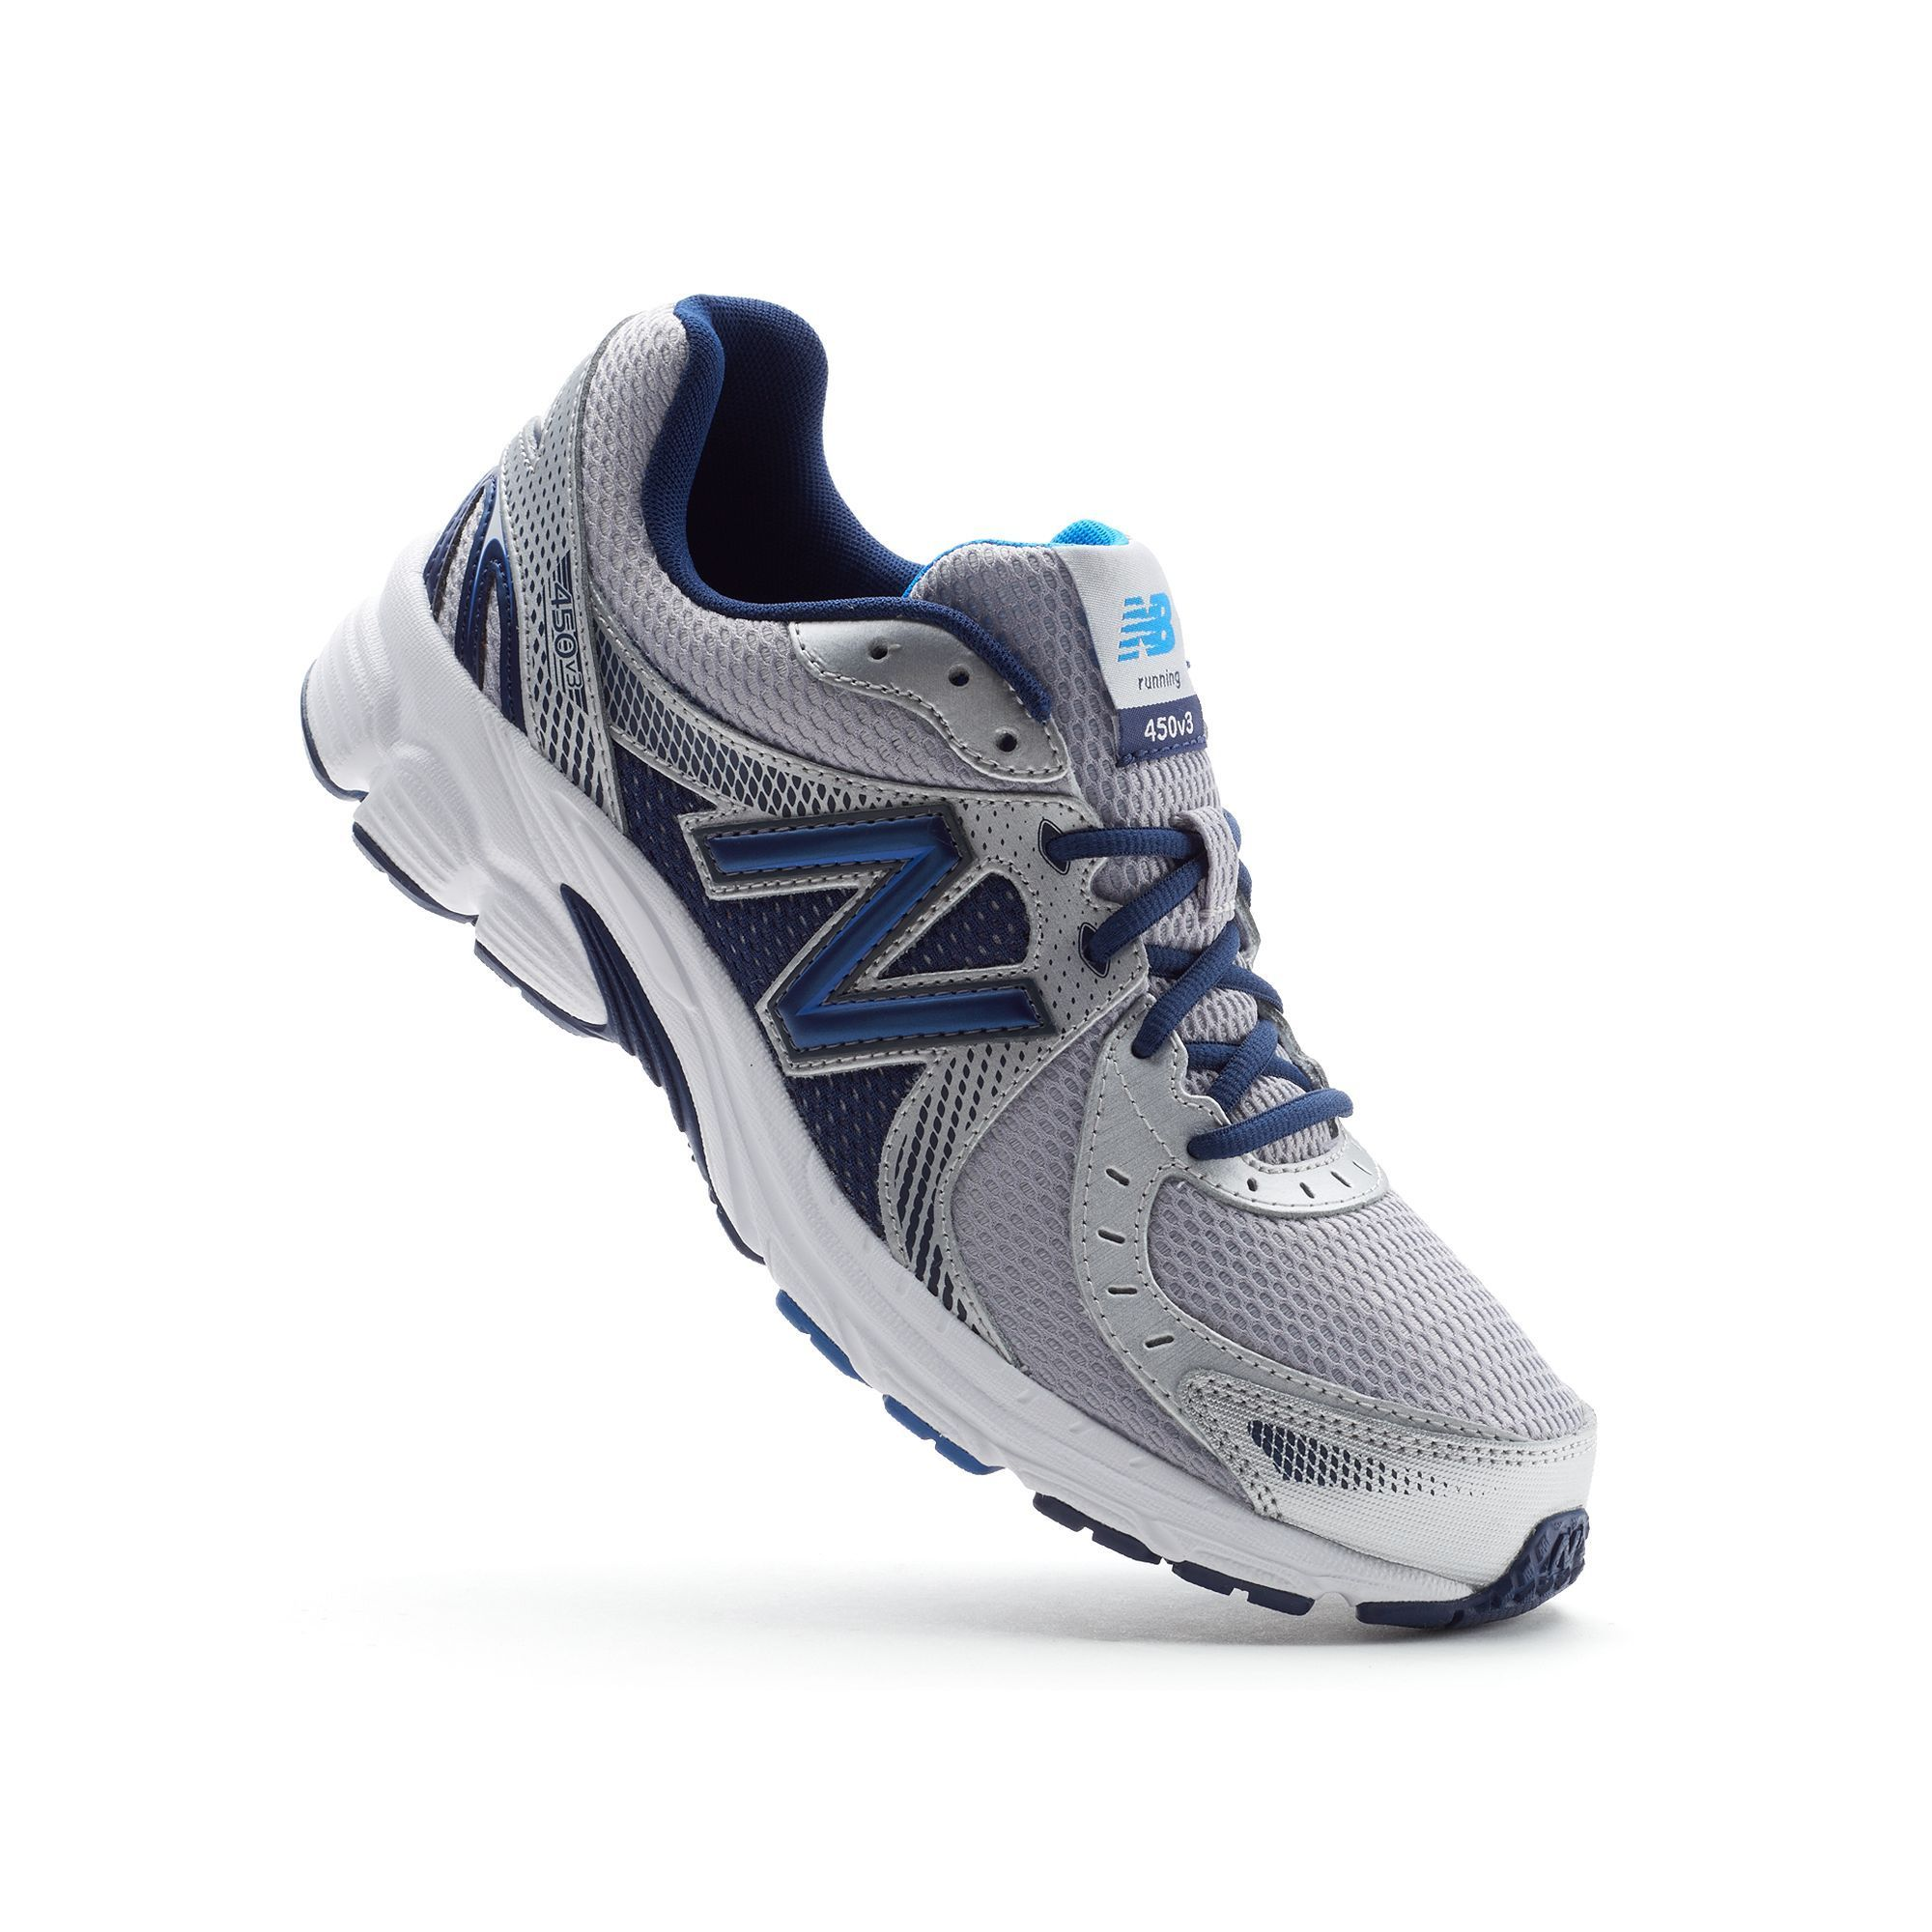 3a8f42f45b5e3 New Balance 450 Men's Running Shoes | Products | New balance shoes ...